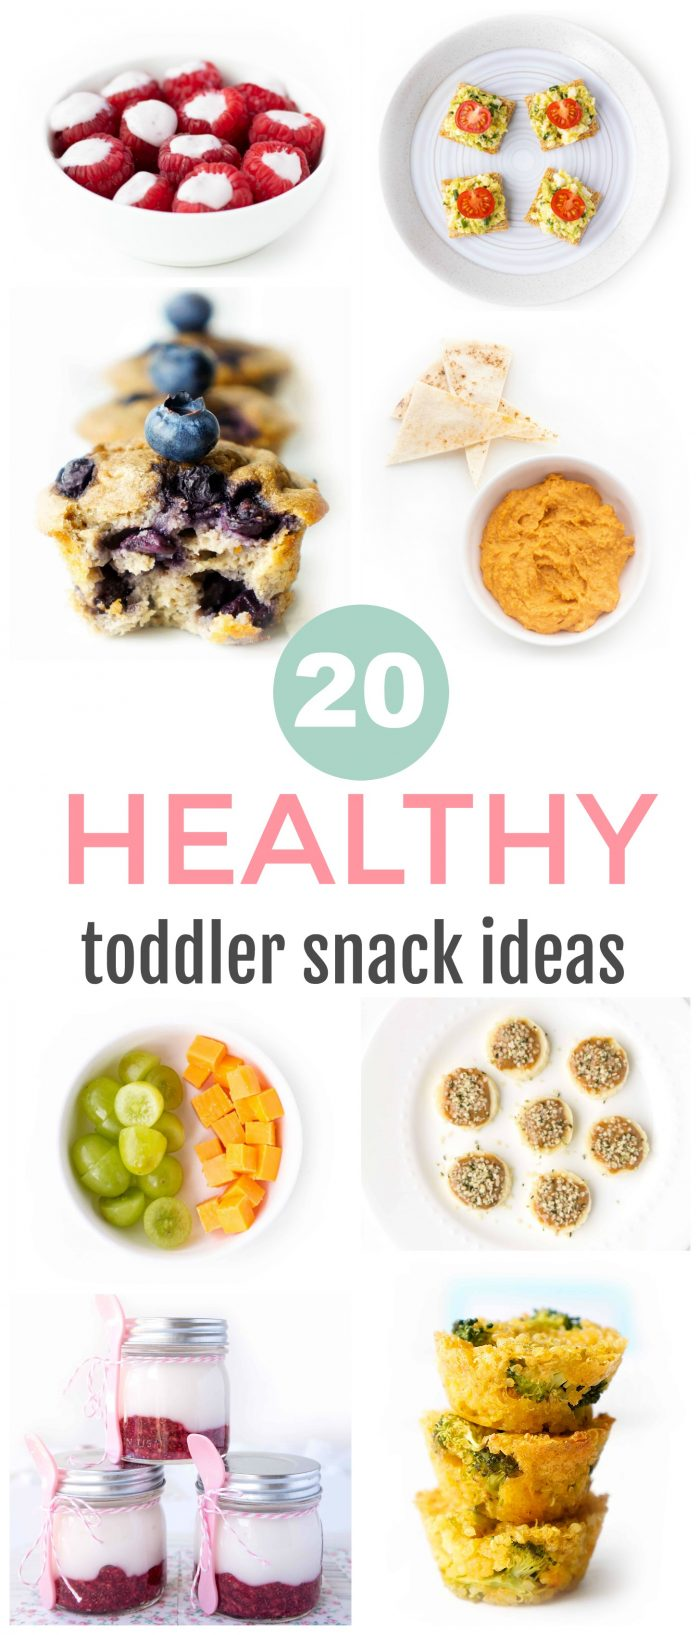 Looking for some healthy snack inspiration for little ones? Here we've got a variety of balanced healthy toddler snacks that are fun and easy to prepare. Many are make-ahead options as well so perfect for taking on the go!